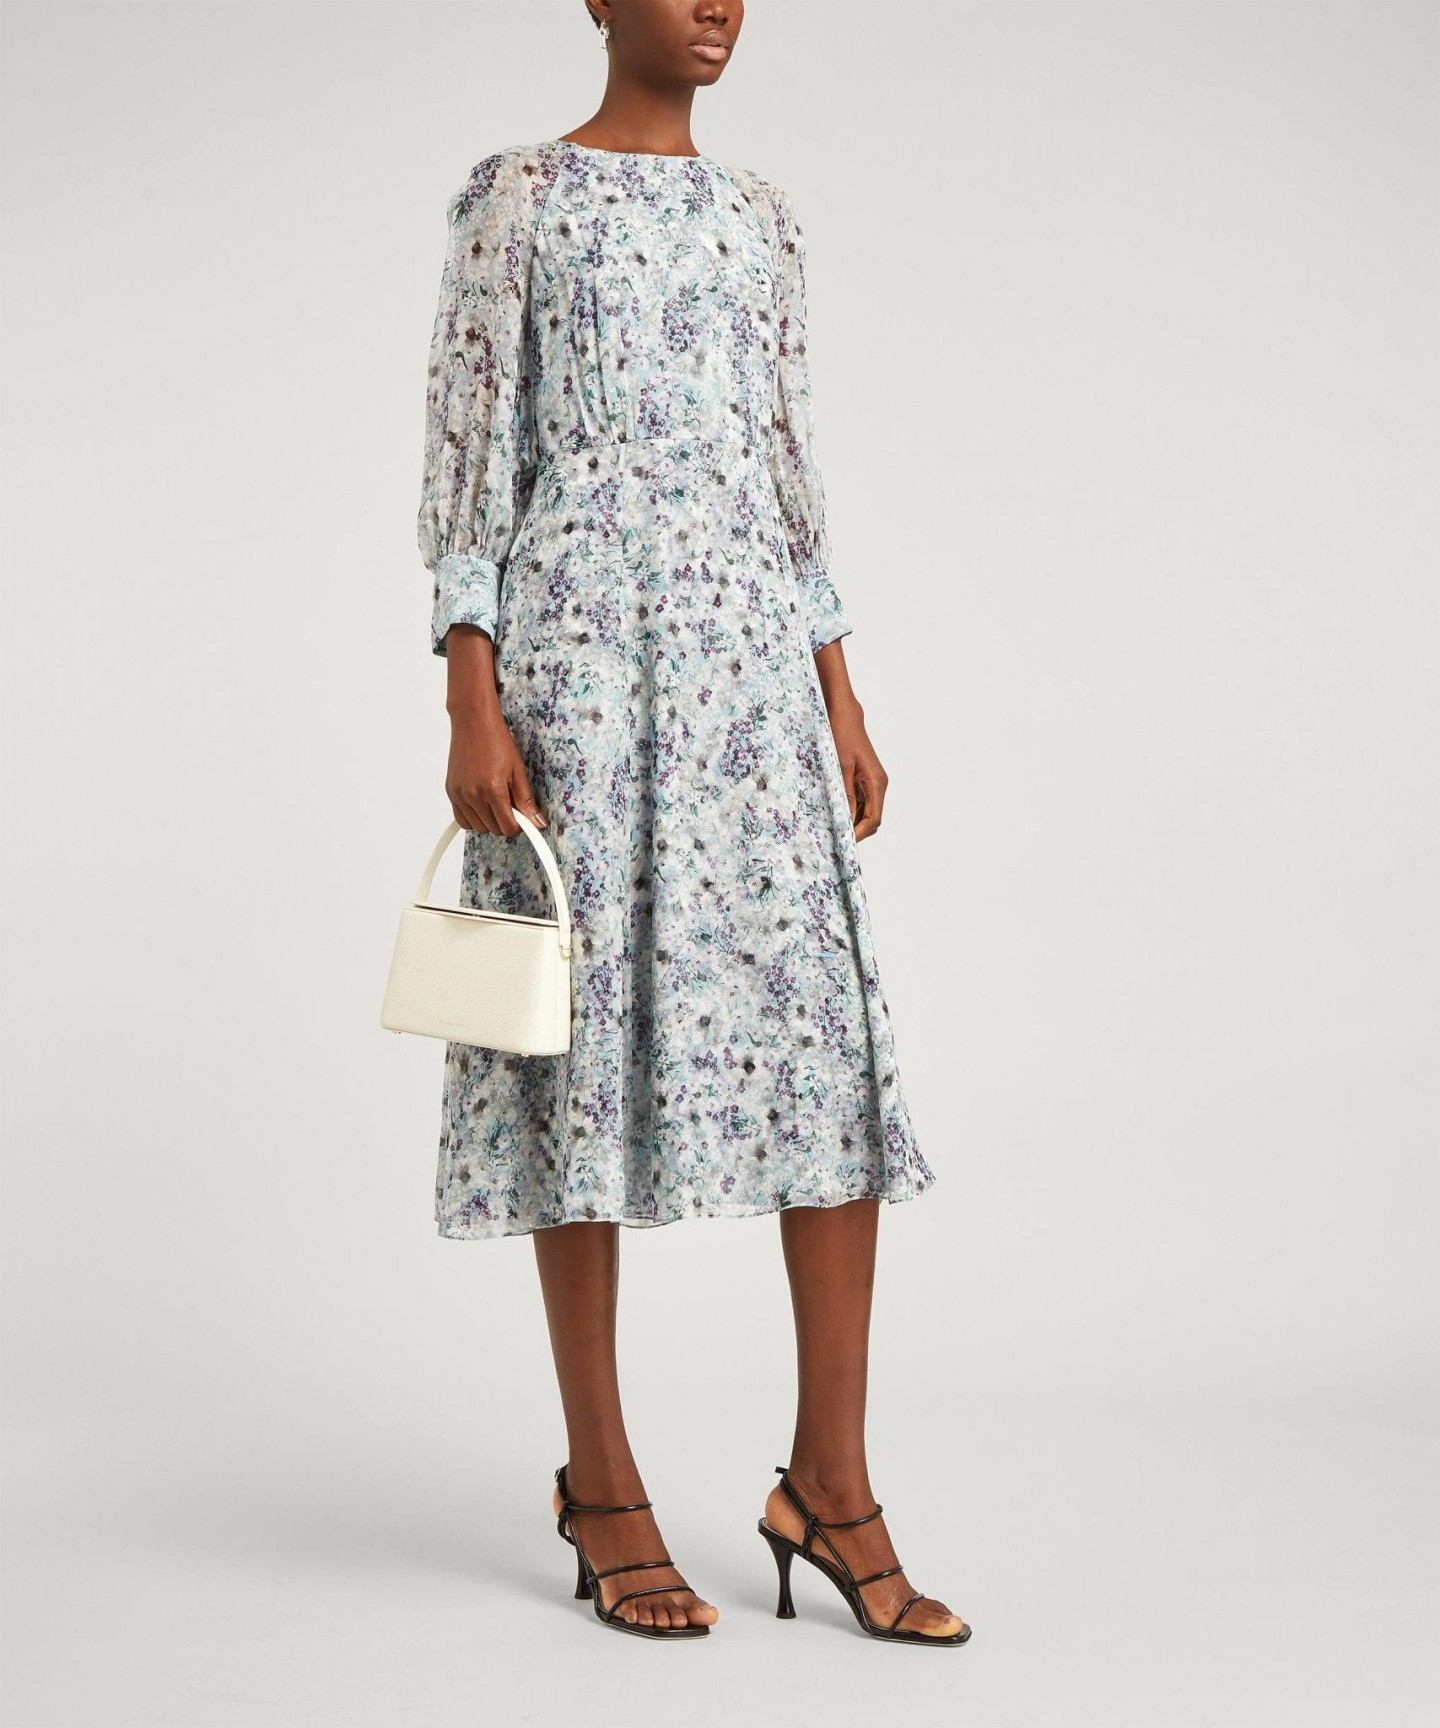 ERDEM Floral Draped Midi-Dress